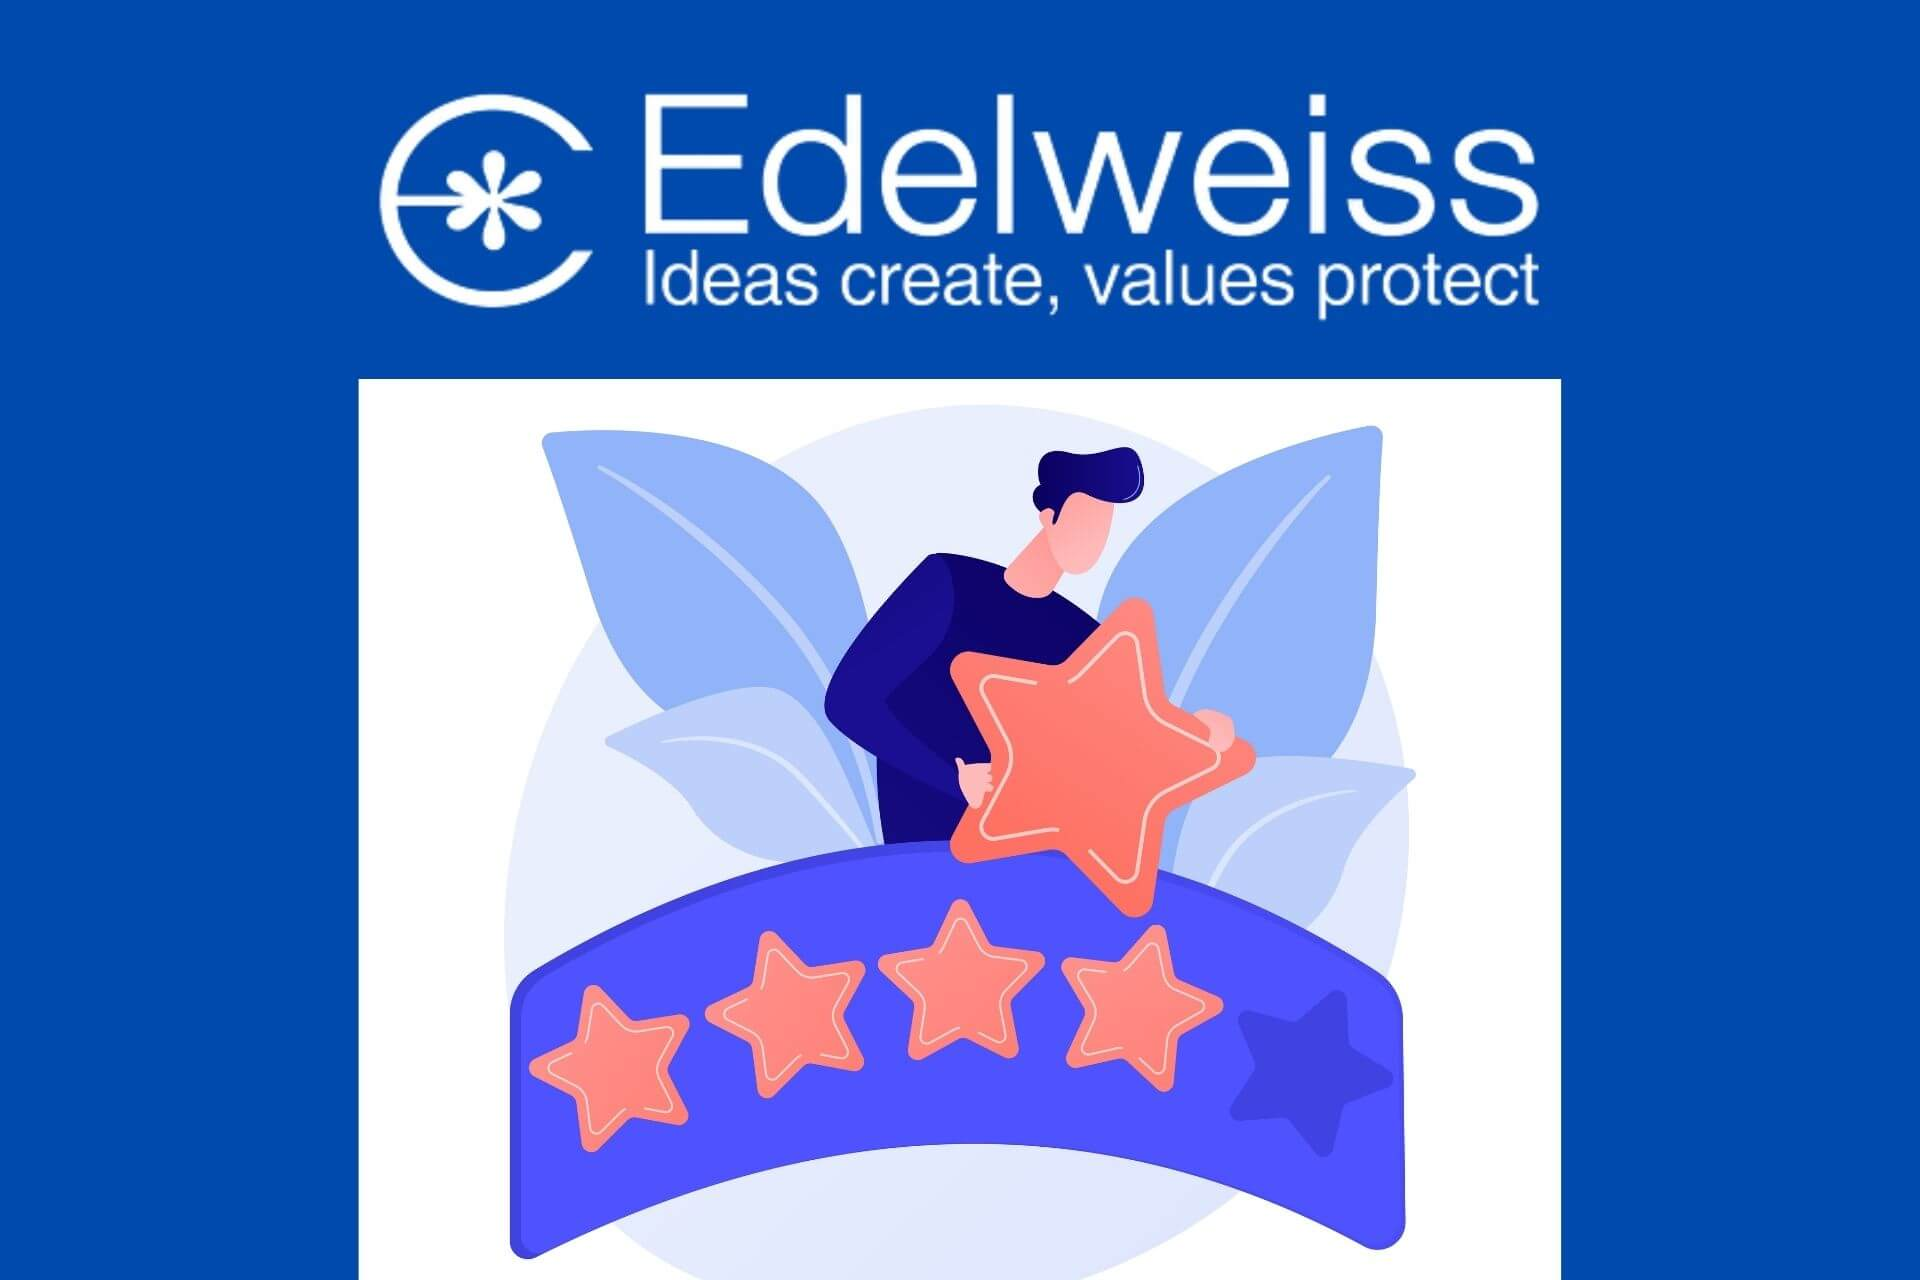 Edelweiss Review